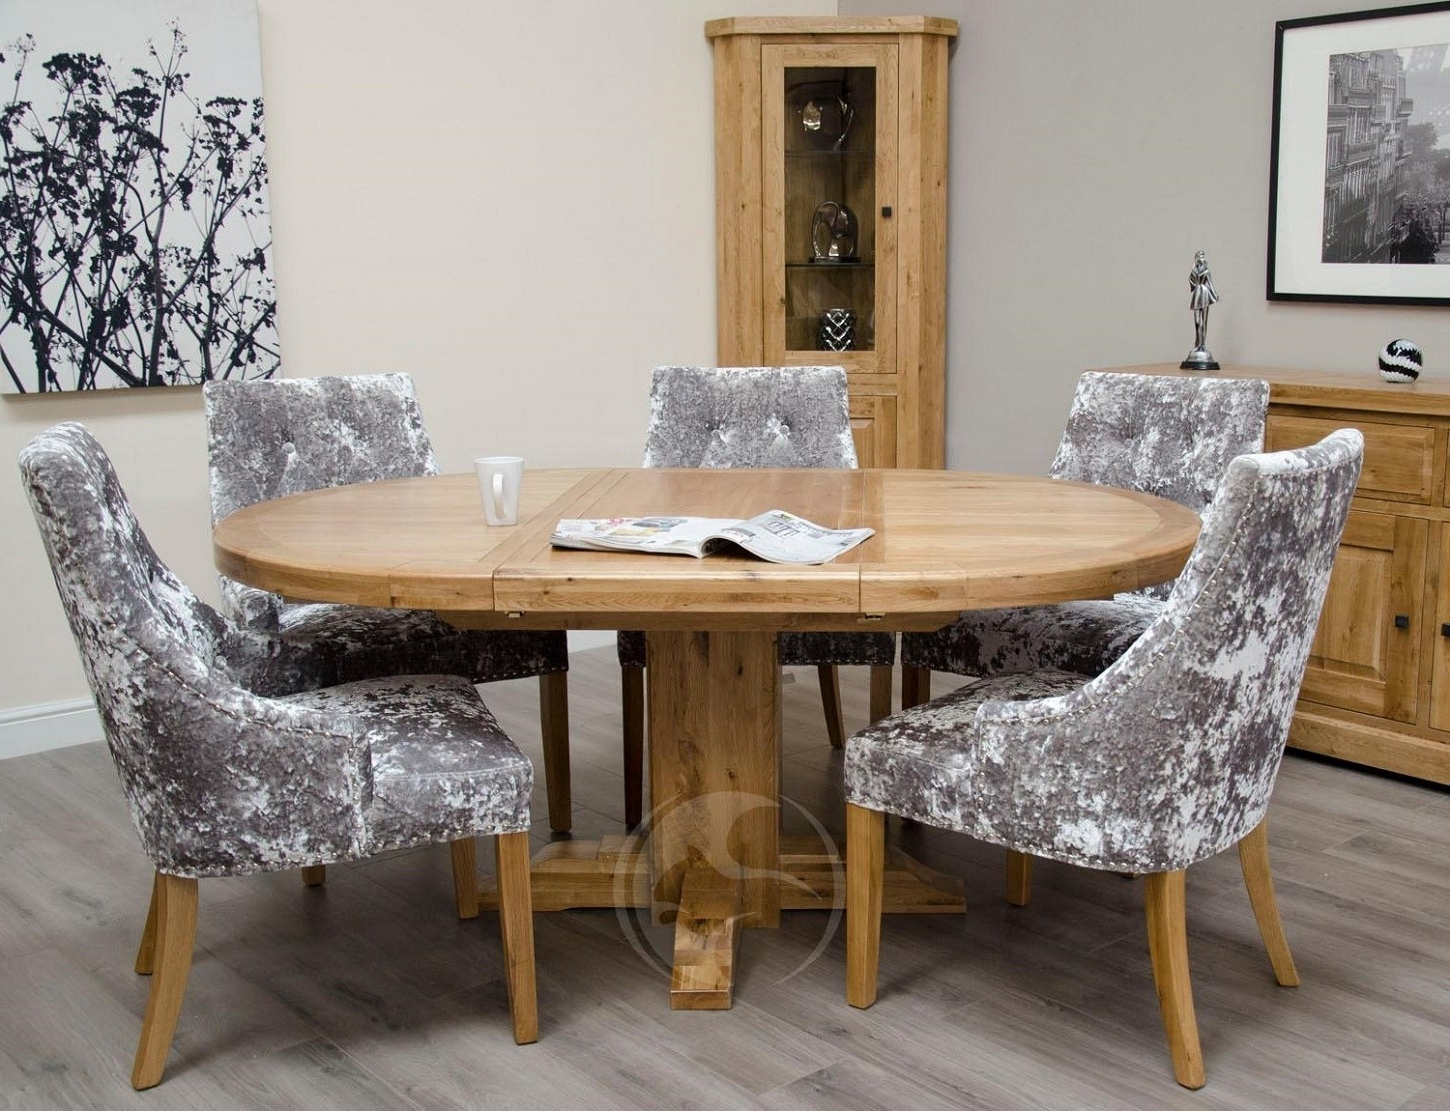 Round Extending Dining Tables And Chairs With Best And Newest Coniston Rustic Solid Oak Round Extending Dining Table (View 19 of 25)